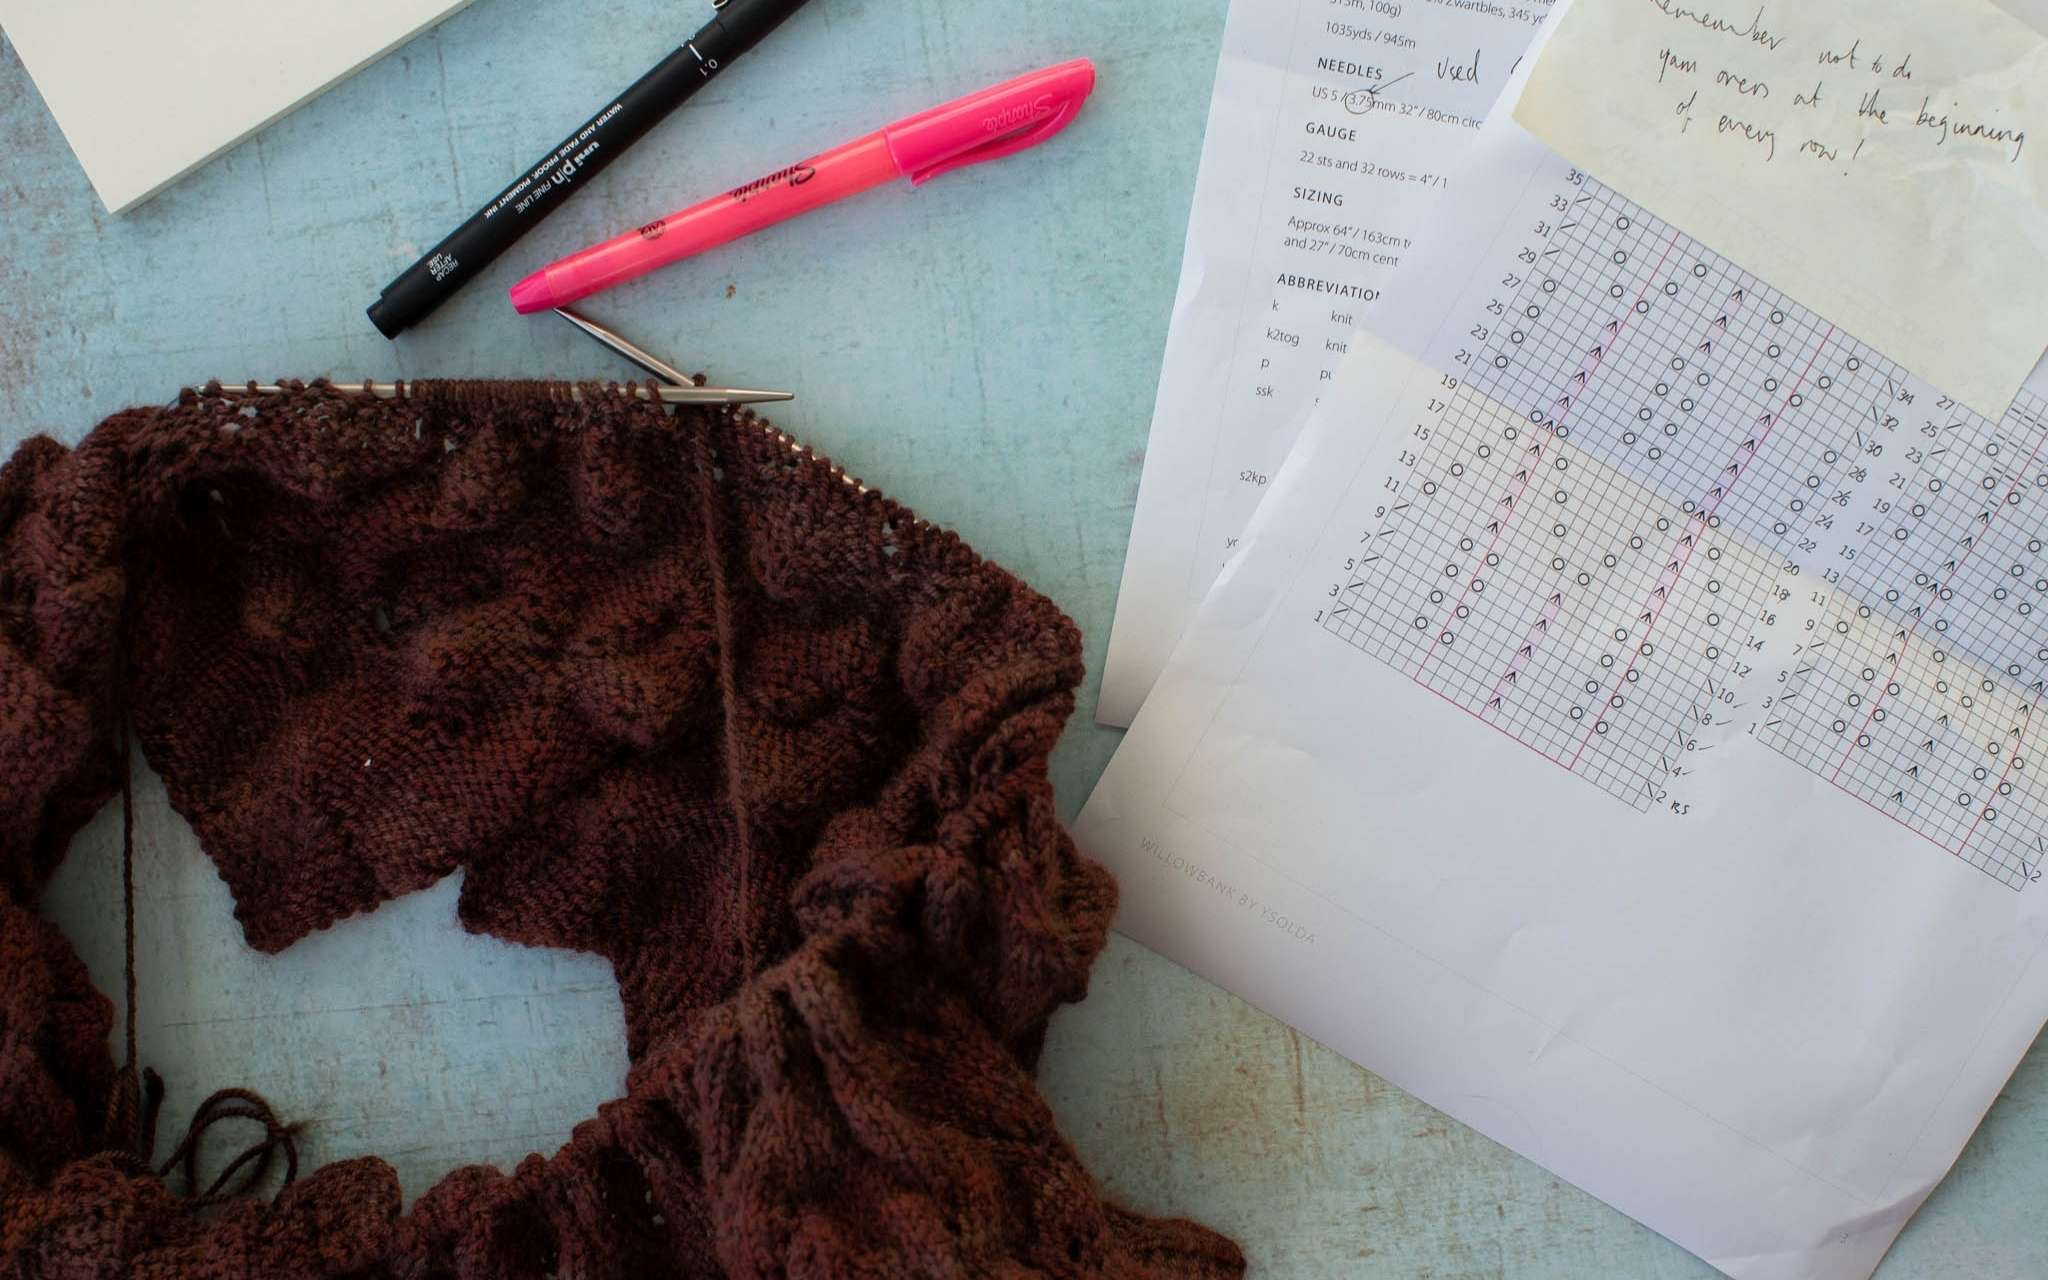 A brown lace knitting project lies on a blue surface next to a black and pink pen, the sheets of a paper knitting pattern and post it notes.